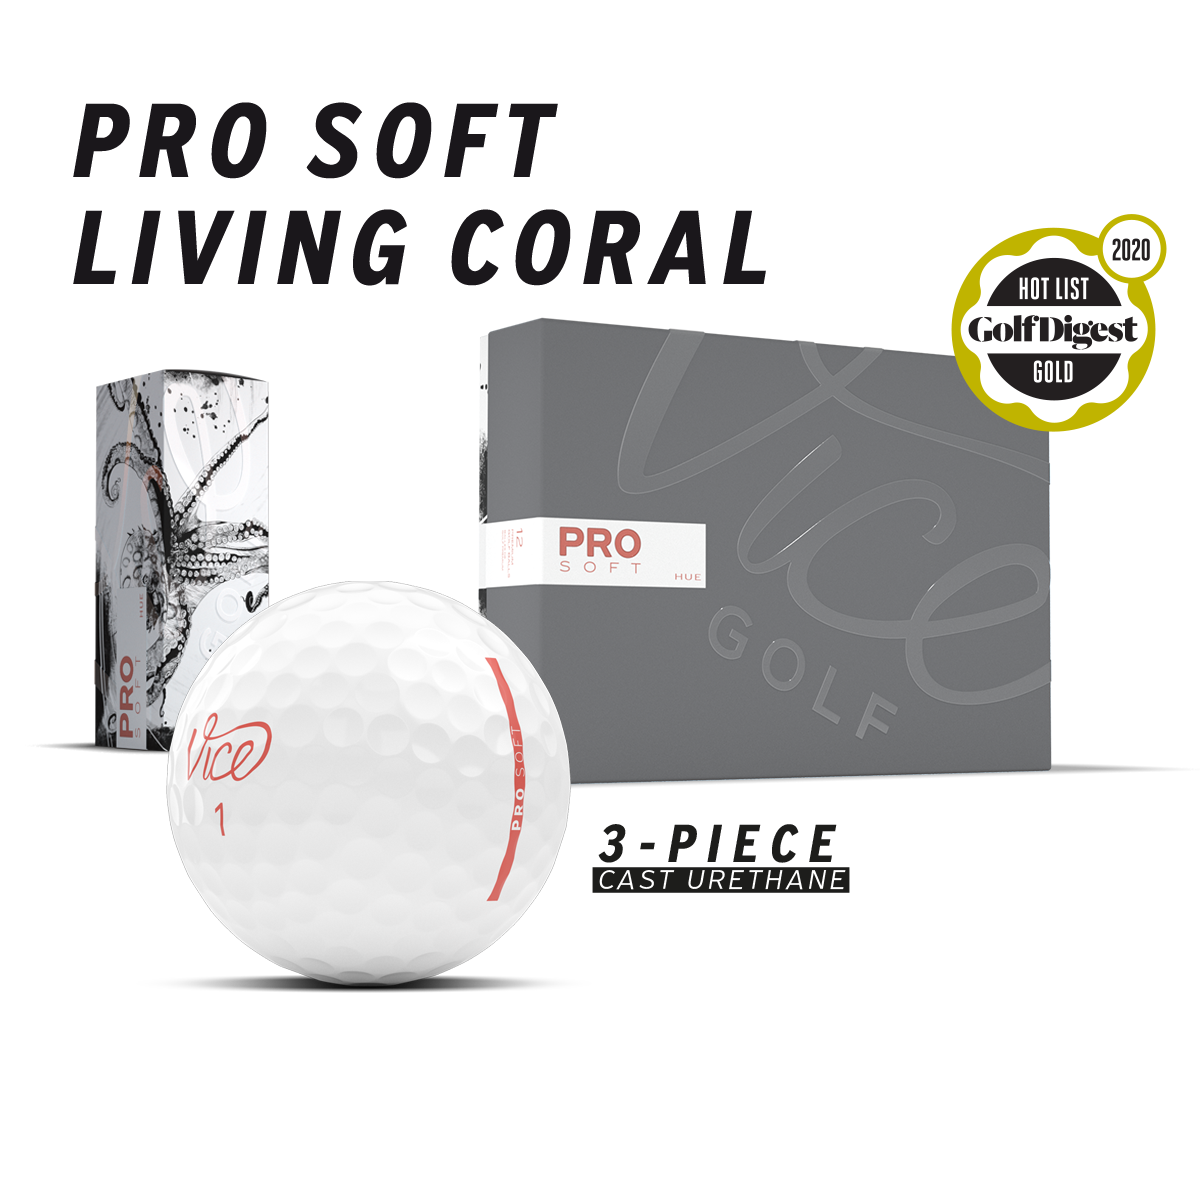 Pro Soft Coral package